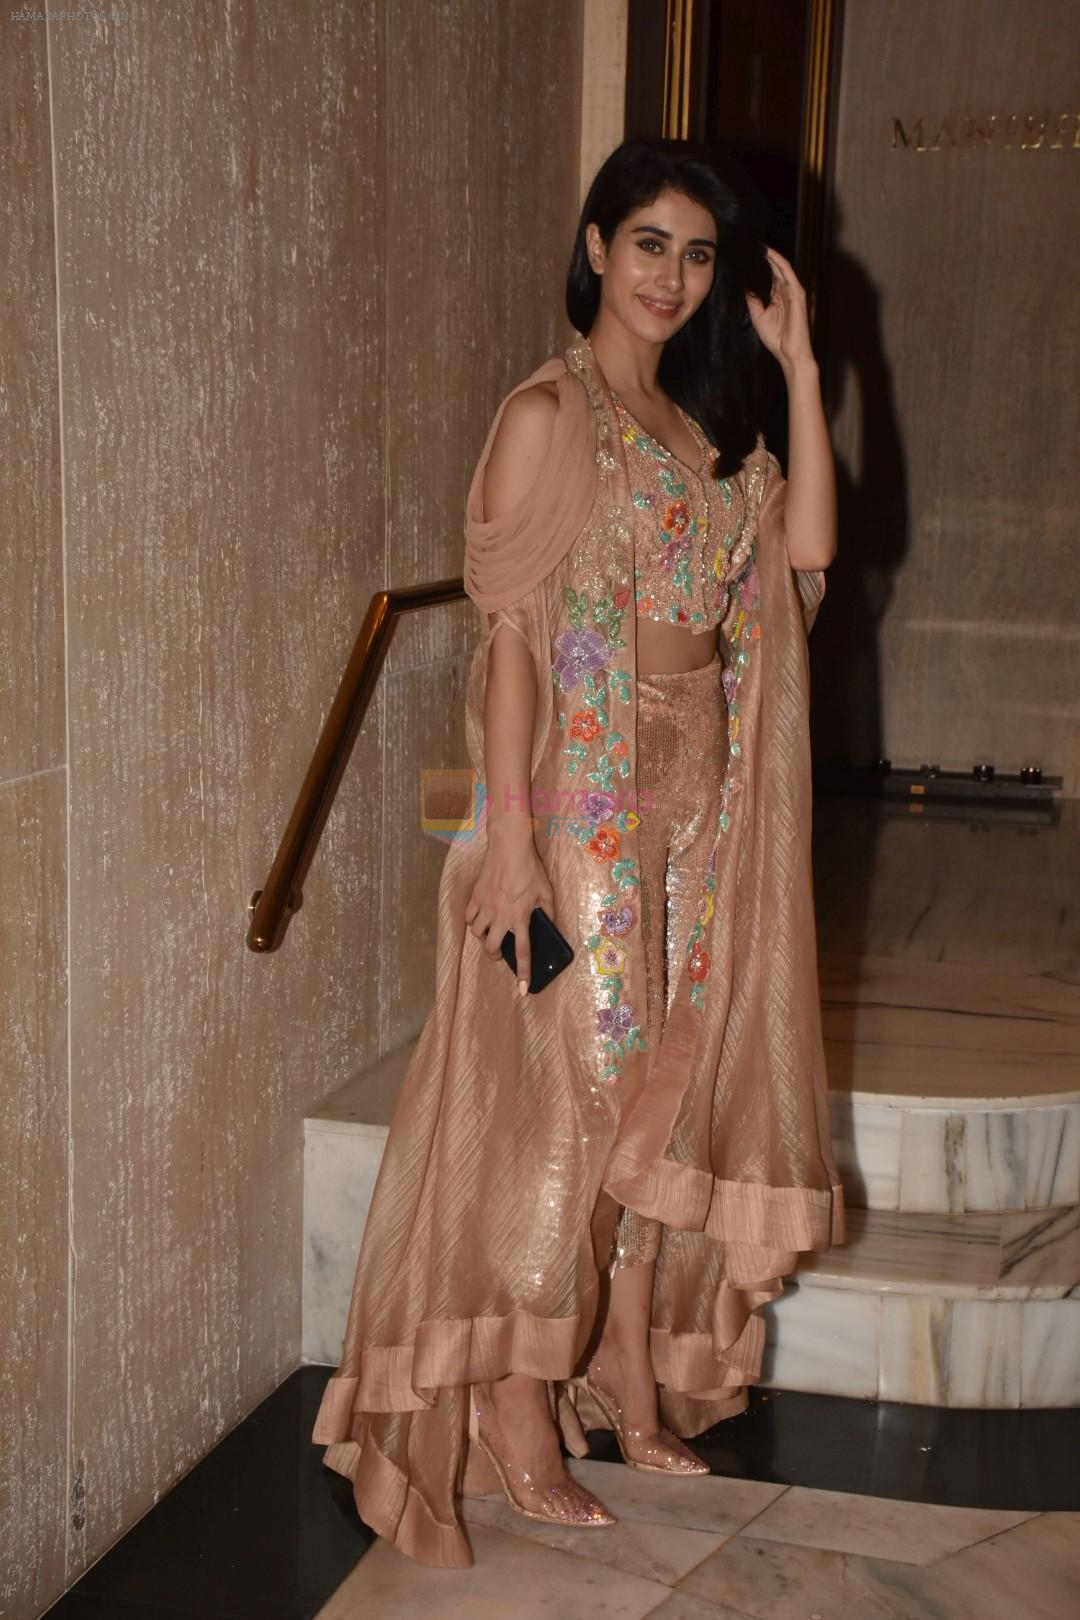 Warina Hussain at Manish Malhotra's party at his home in bandra on 20th Aug 2019